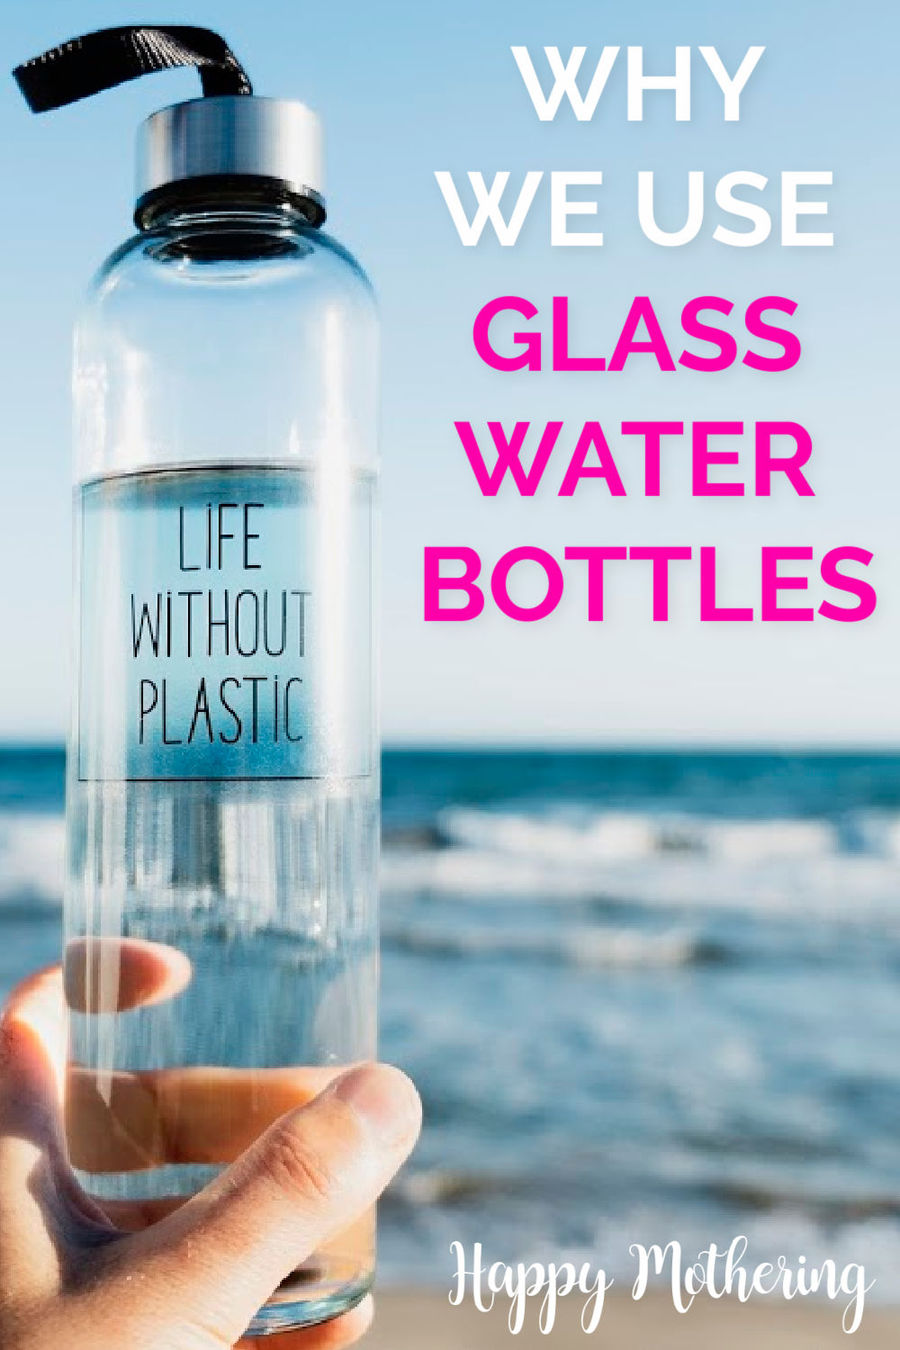 Glass Water Bottles Why We Switched from Stainless Steel